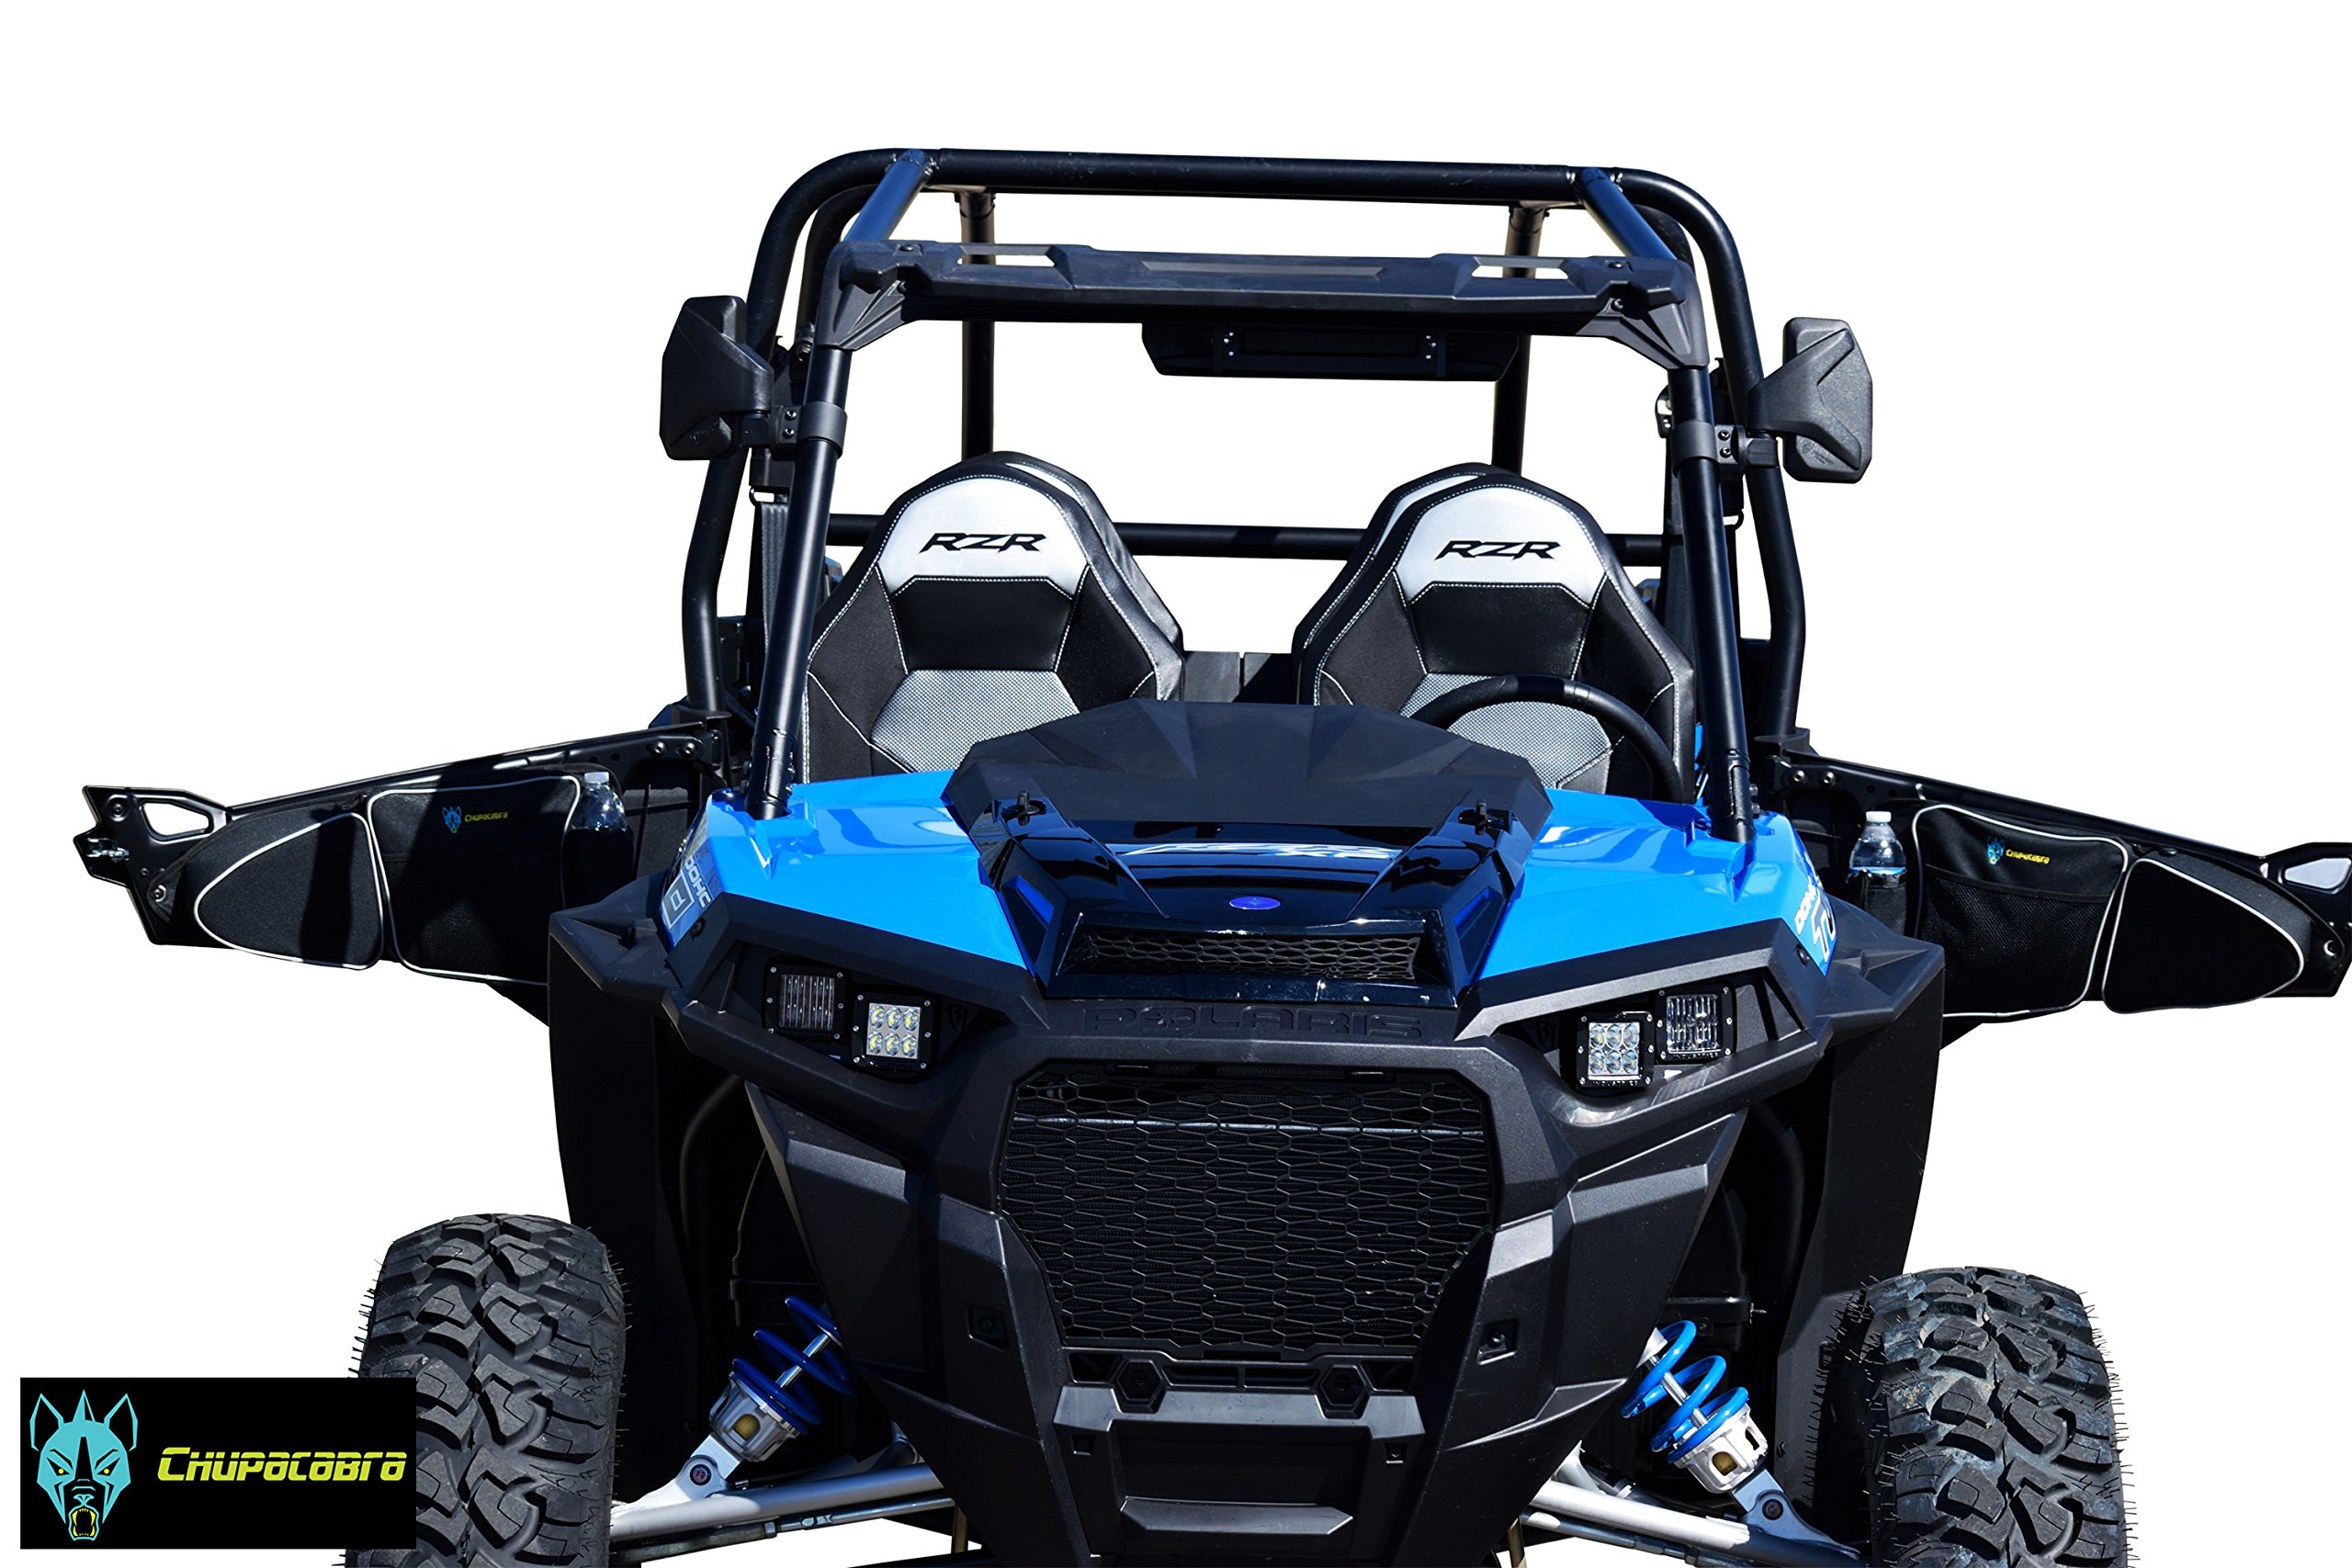 Chupacabra Offroad Door Bags RZR Turbo 1000 900S Passenger and Driver Side Storage Bag by Chupacabra Offroad (Image #5)